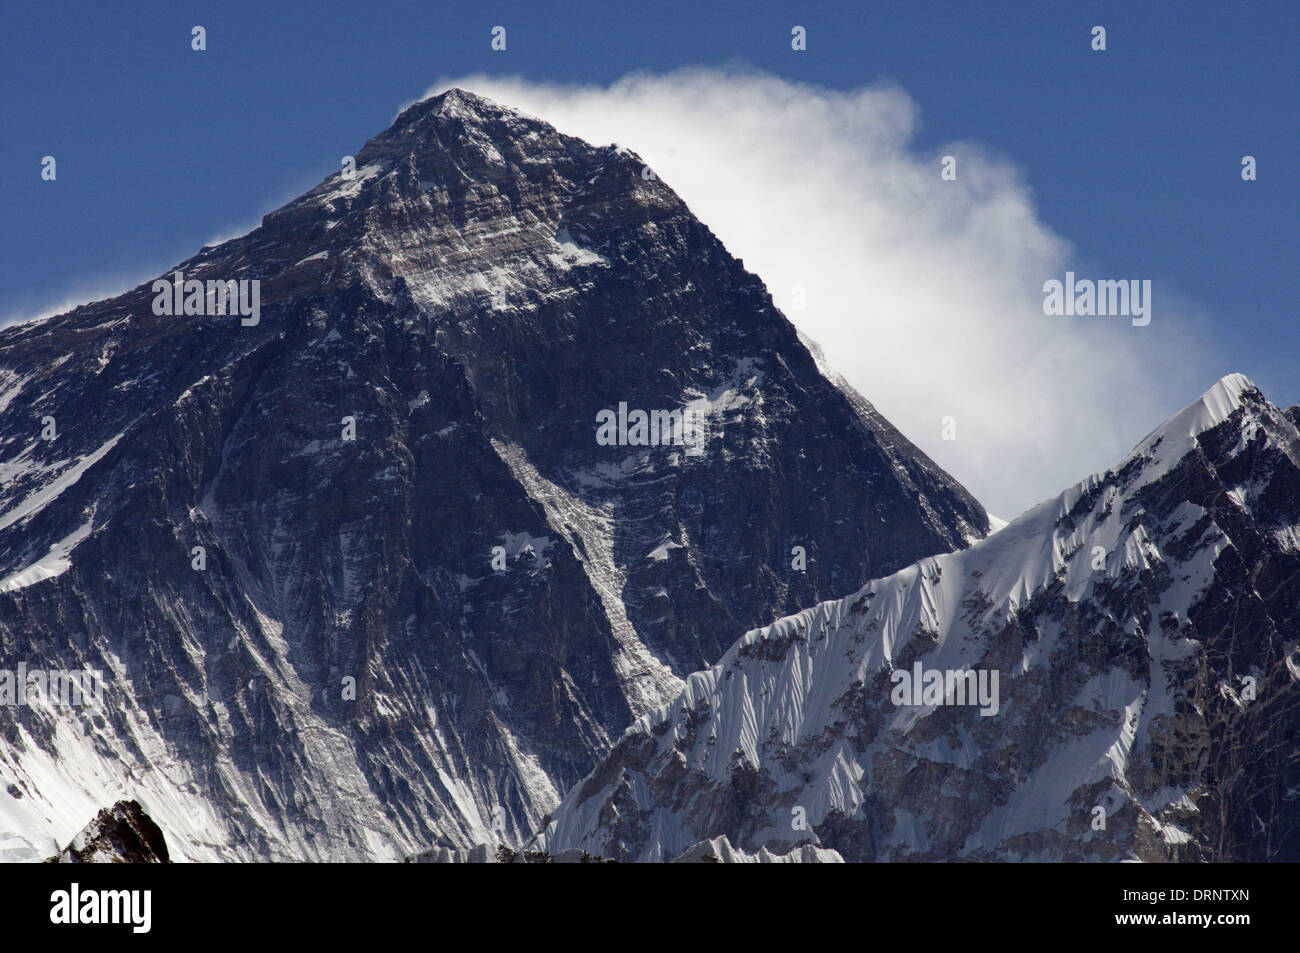 The mighty South West face of Mount Everest as seen from Gokyo Ri, Nepal himalaya - Stock Image